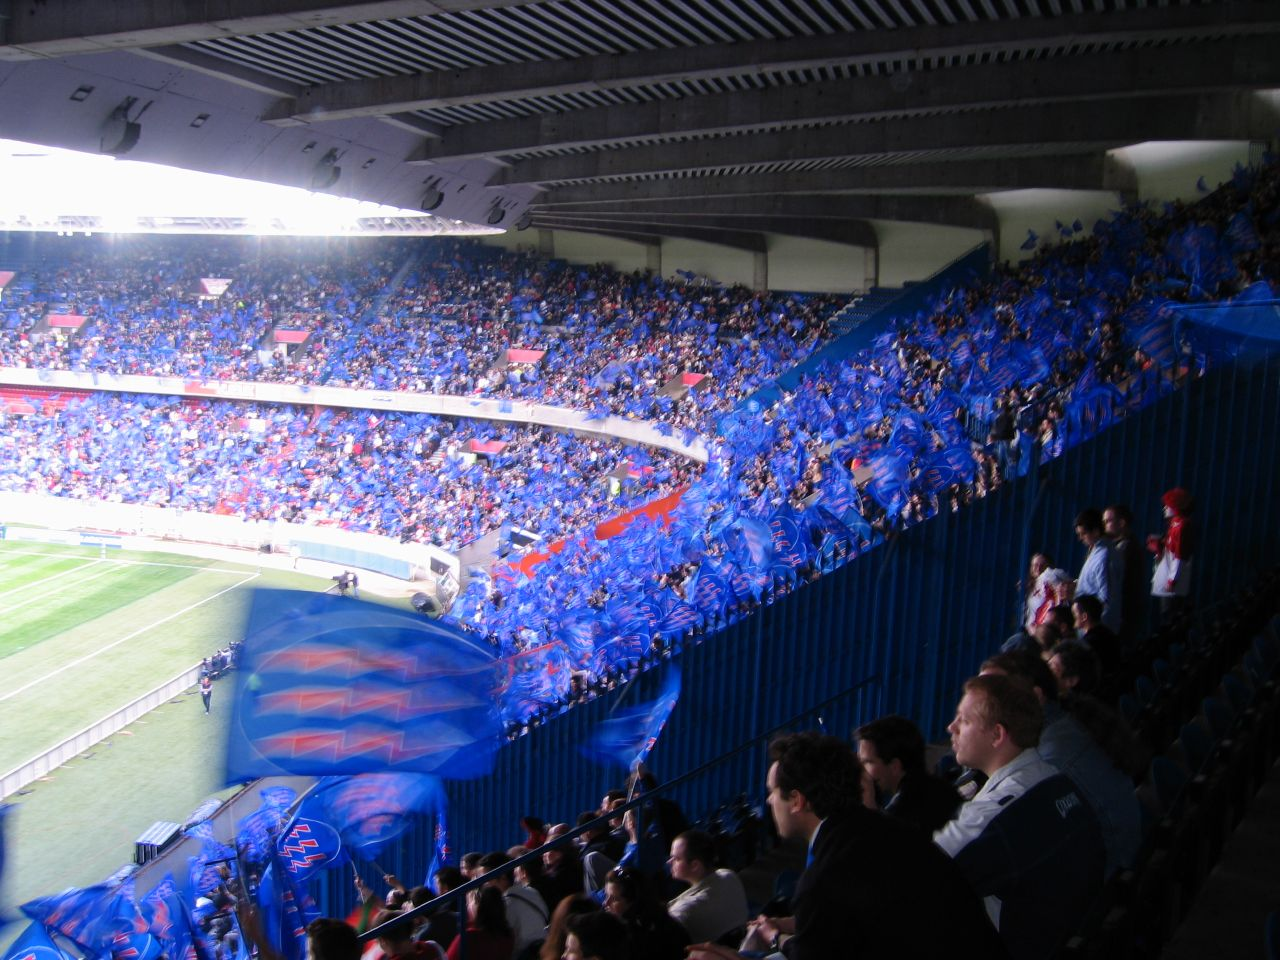 Psg a guide to their legendary home parc des princes - Parc des princes porte de saint cloud ...